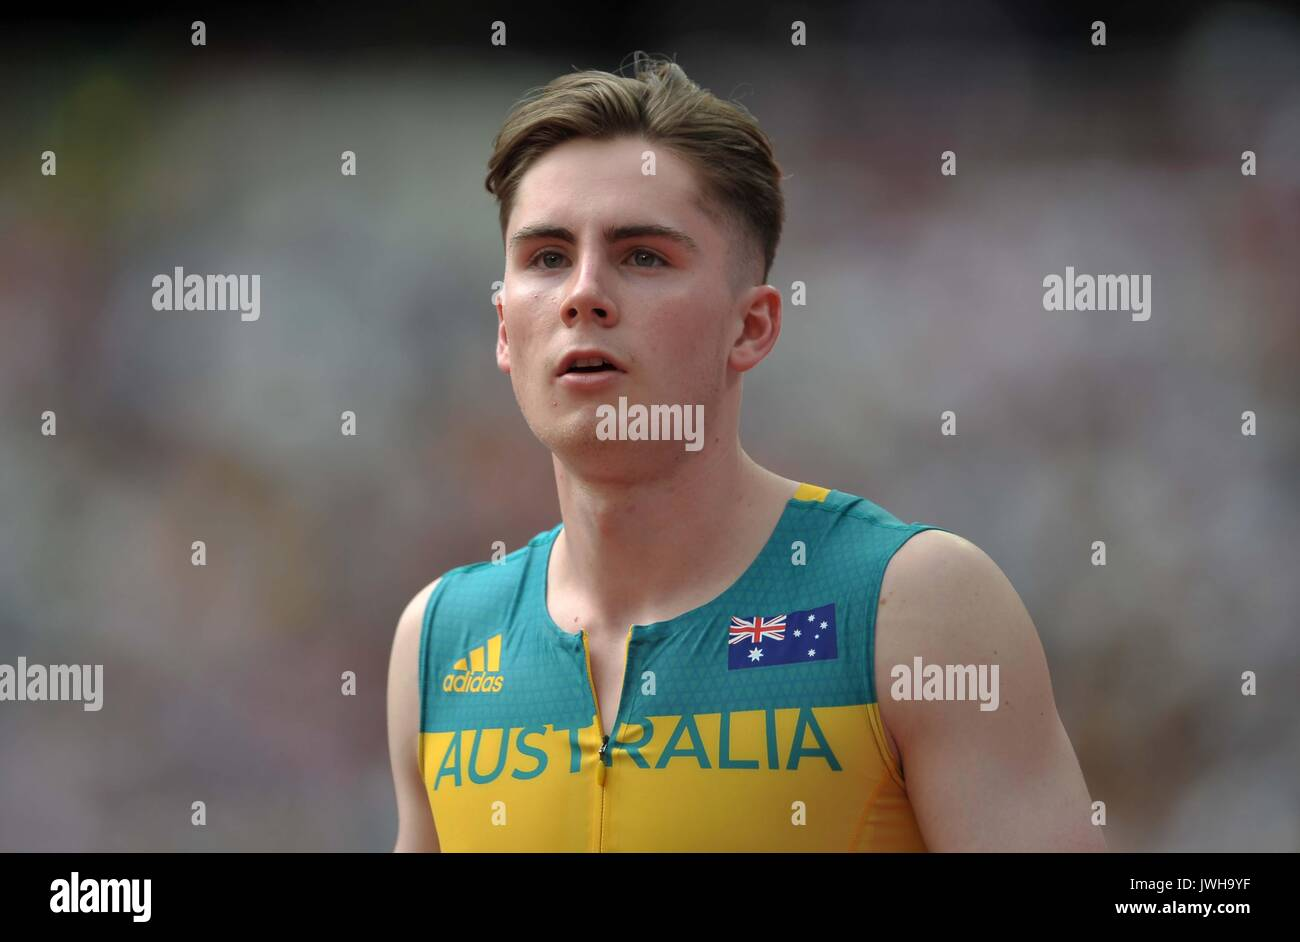 Lonodn, UK. 12 Aug, 2017. Rohan Browning (AUS) in the mens 4 x 100m relay. IAAF world athletics championships. London Olympic stadium. Queen Elizabeth Olympic park. Stratford. London. UK. 12/08/2017. Credit: Sport In Pictures/Alamy Live News - Stock Image